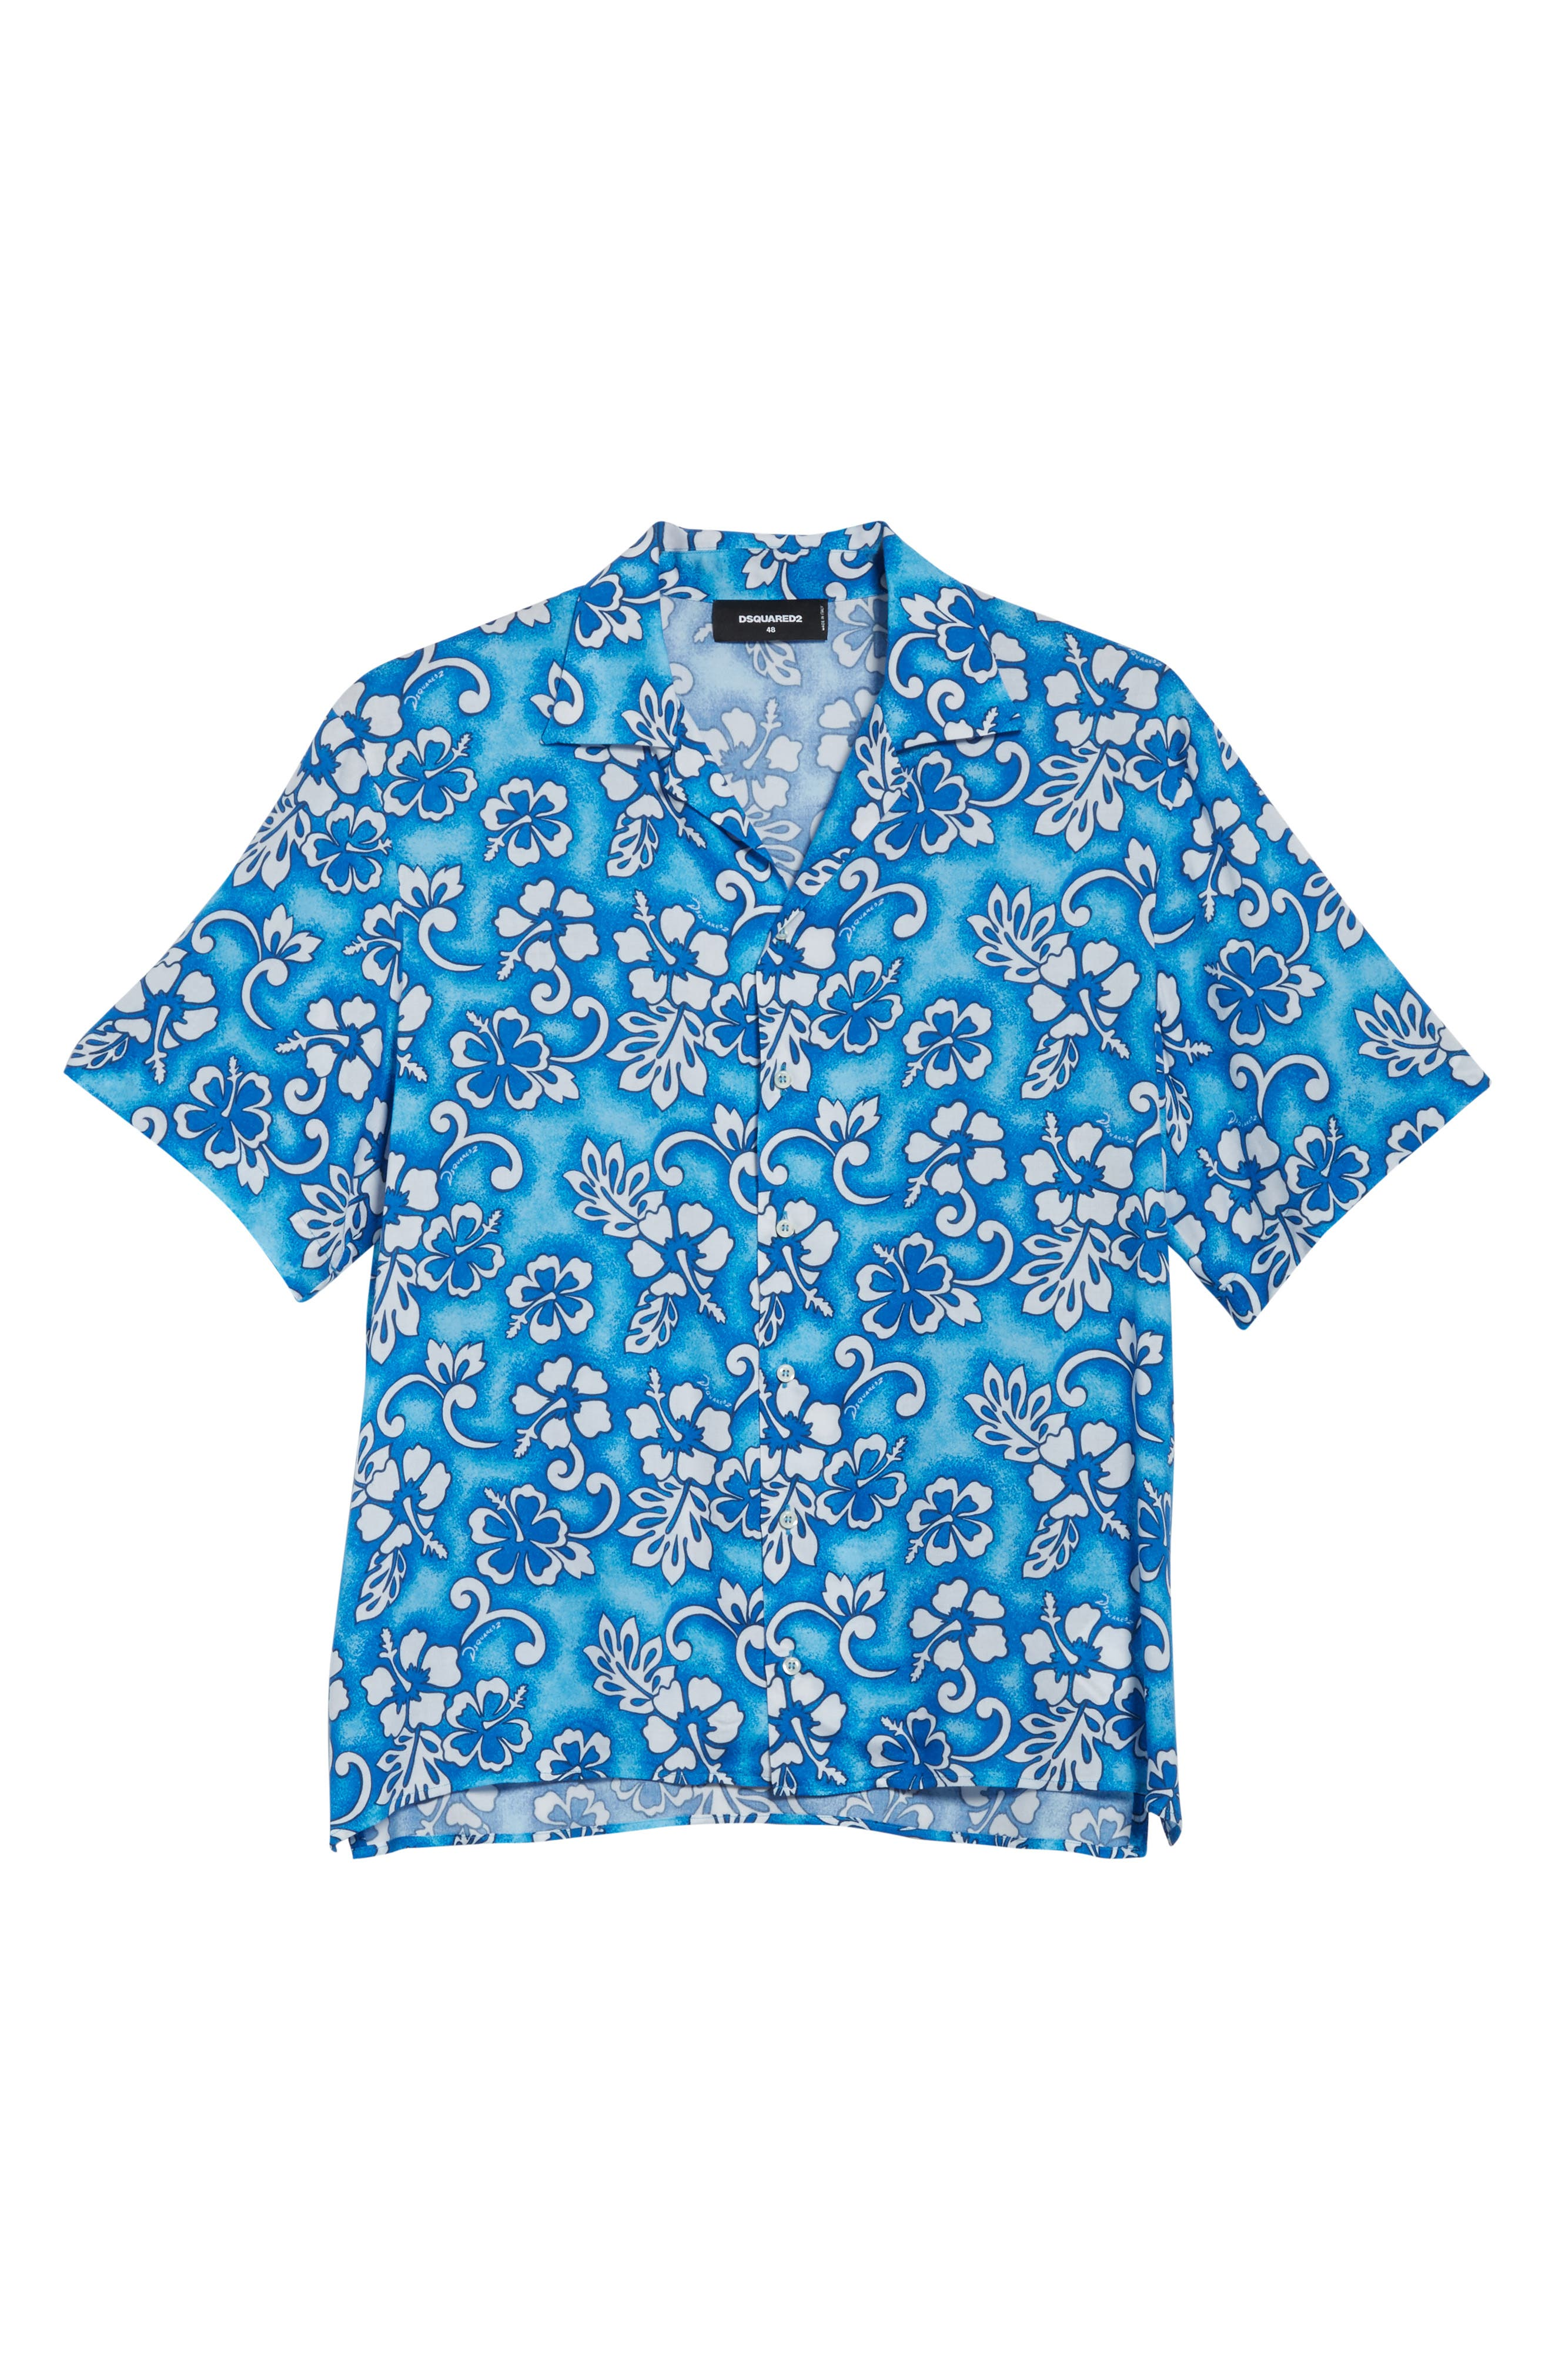 Floral Print Camp Shirt,                             Alternate thumbnail 6, color,                             400